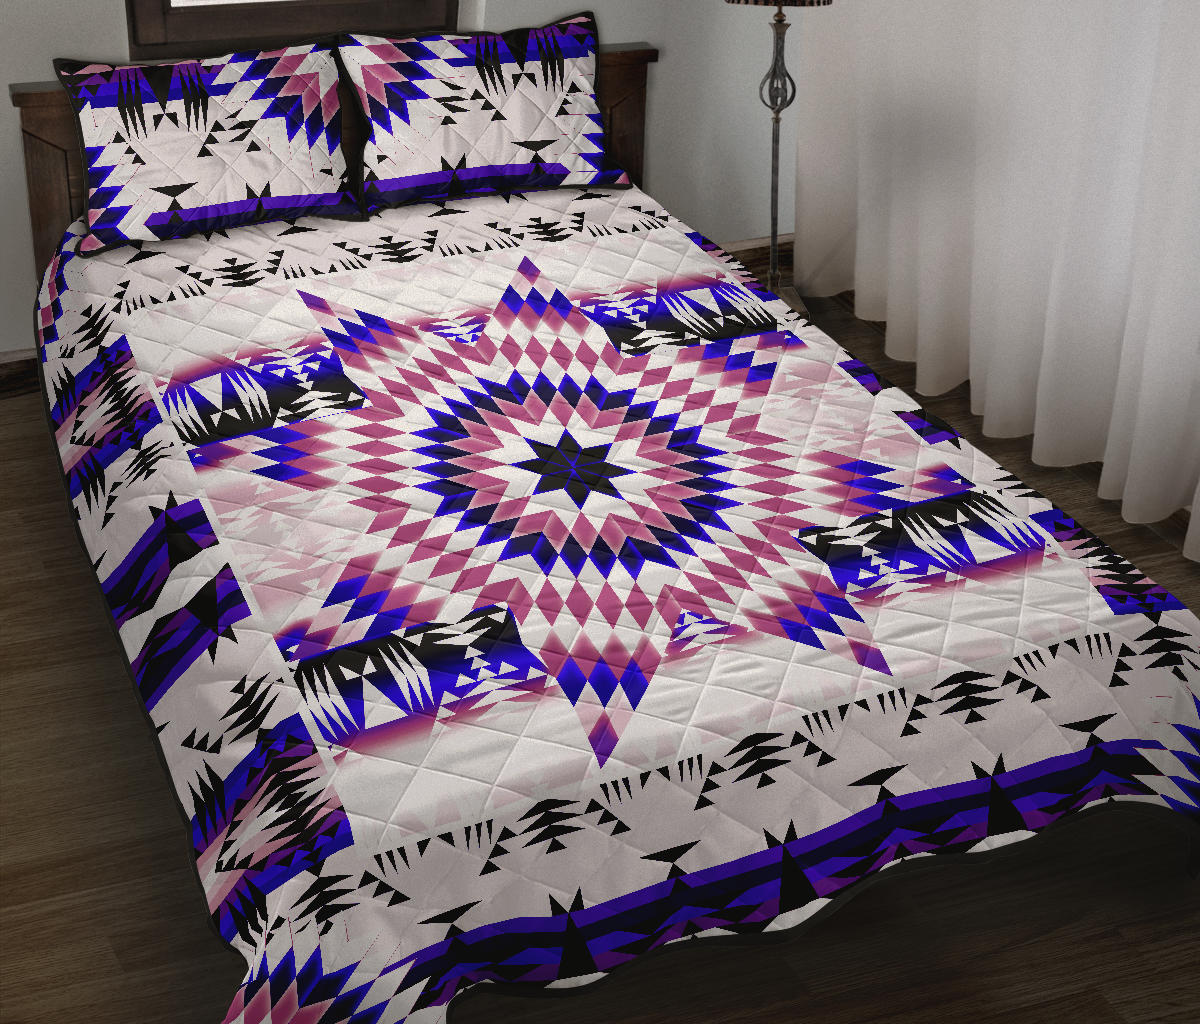 White Canyon Star Quilt